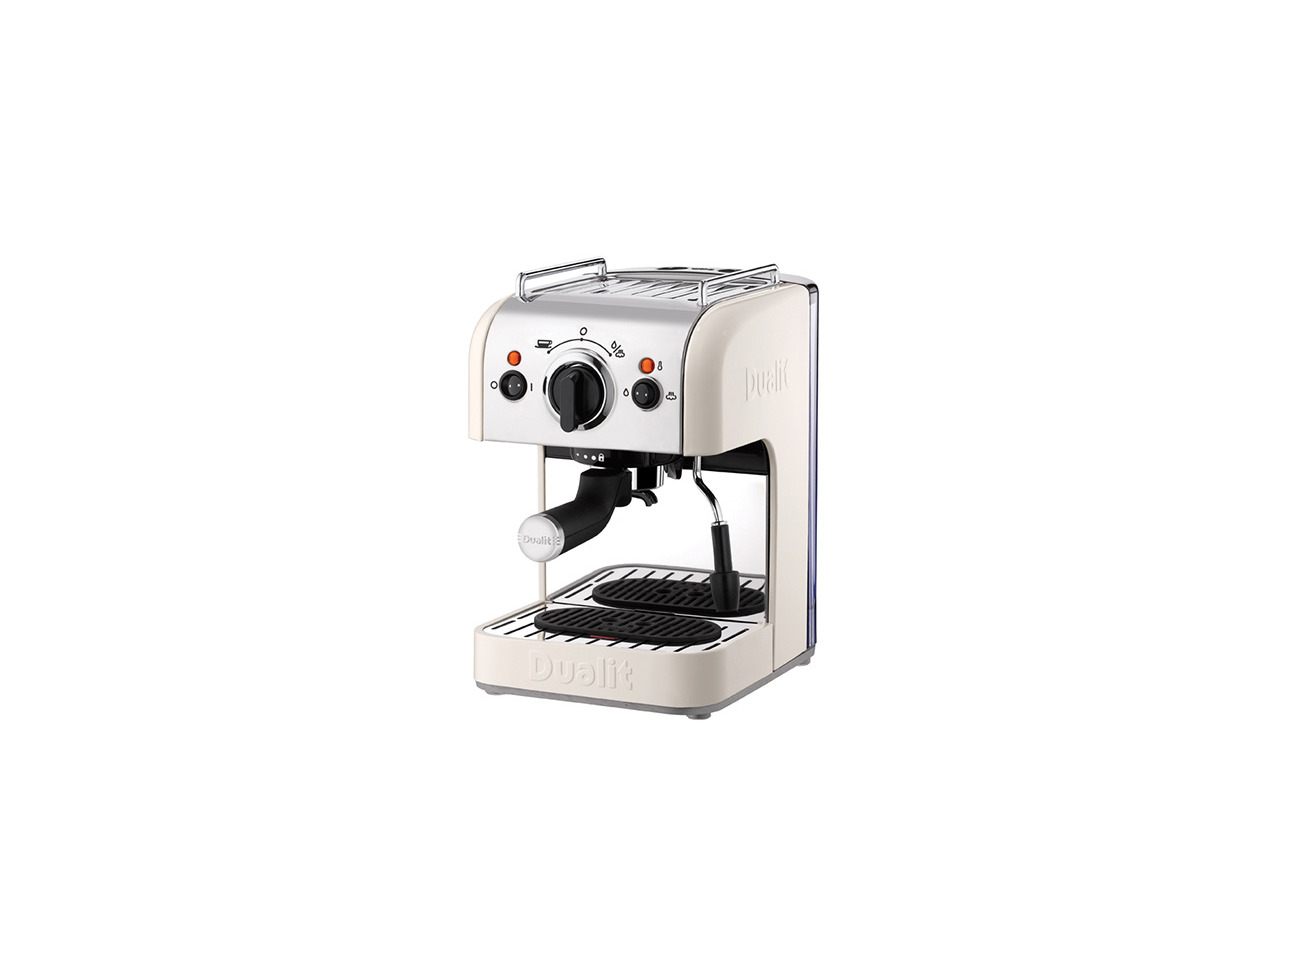 Silver Dualit 84440  3-in-1 Coffee Machine